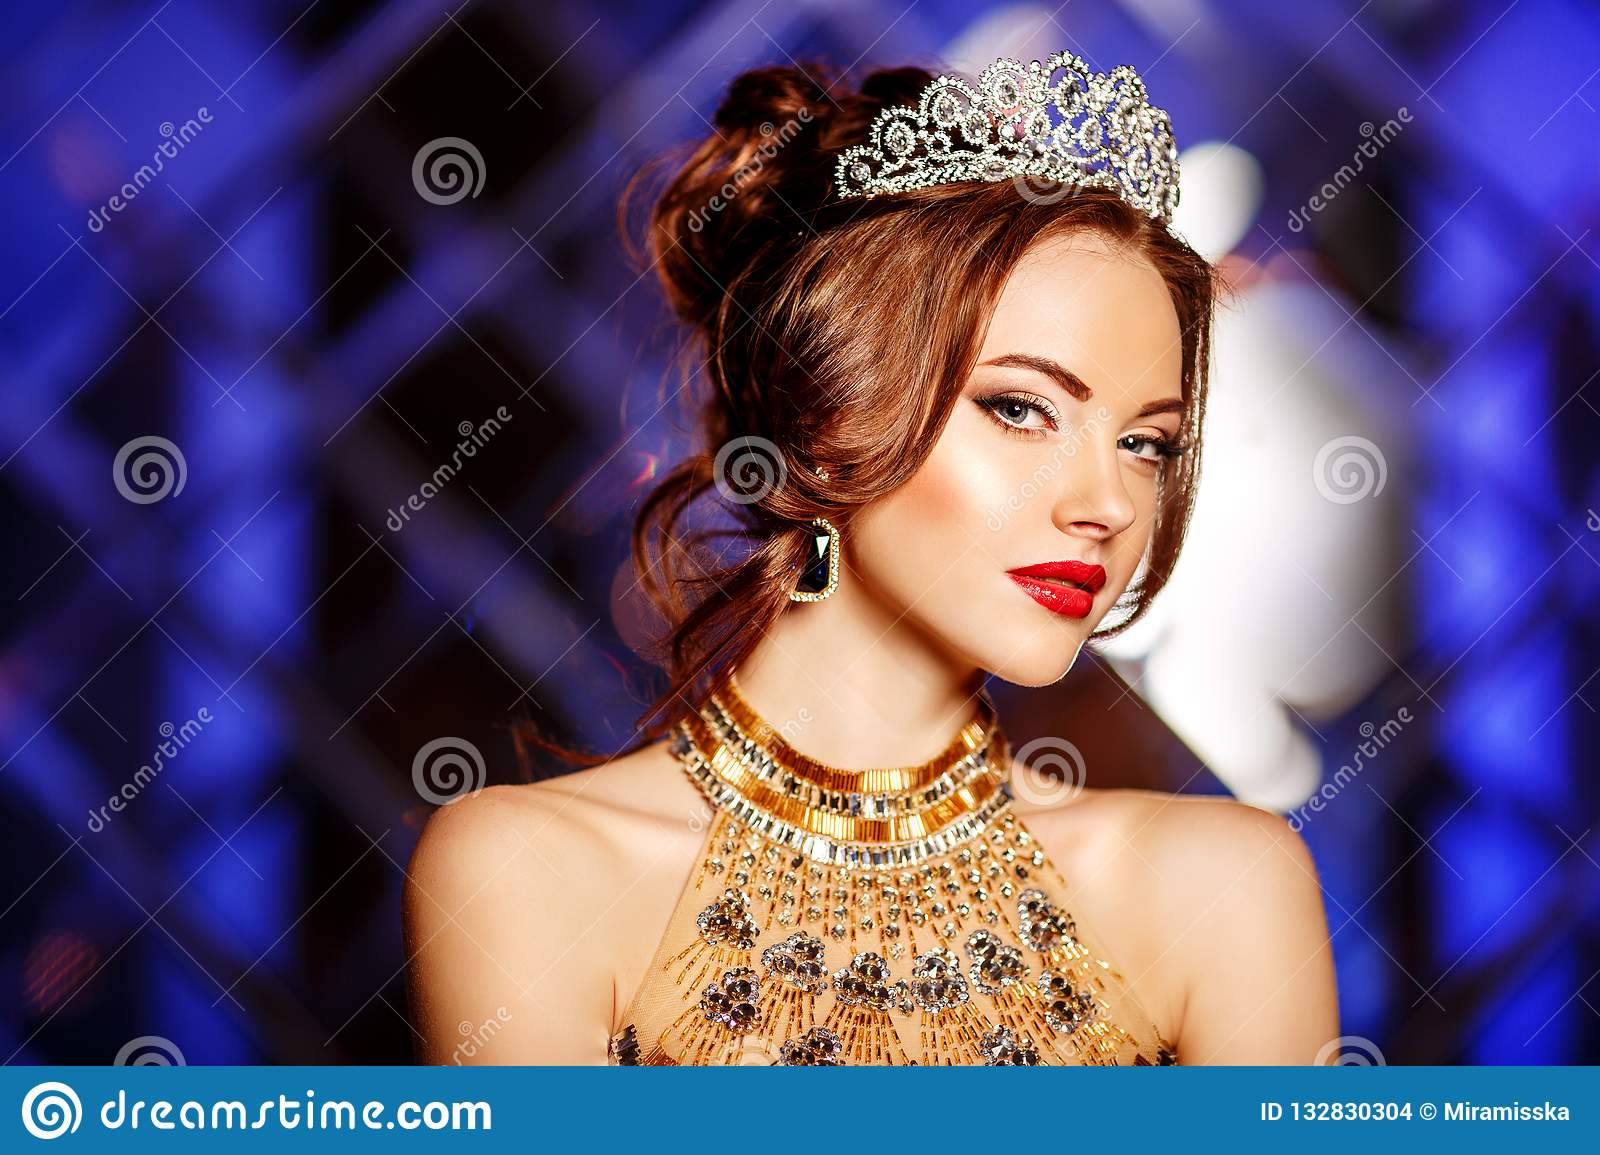 Woman queen princess in crown and lux dress, lights party background Luxury girl Long shiny healthy volume hair Waves Curls